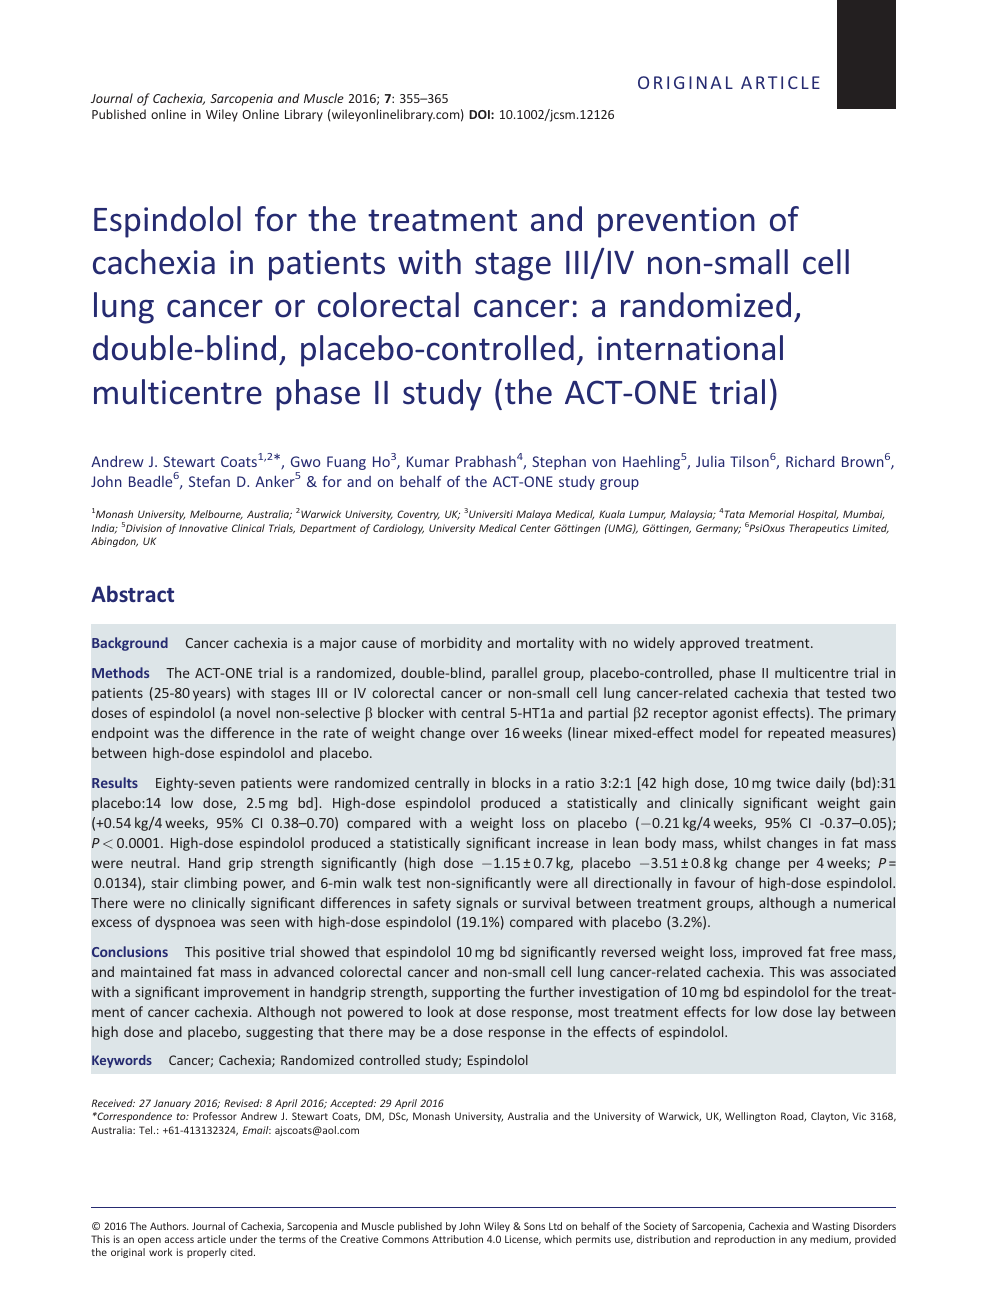 Espindolol for the treatment and prevention of cachexia in patients